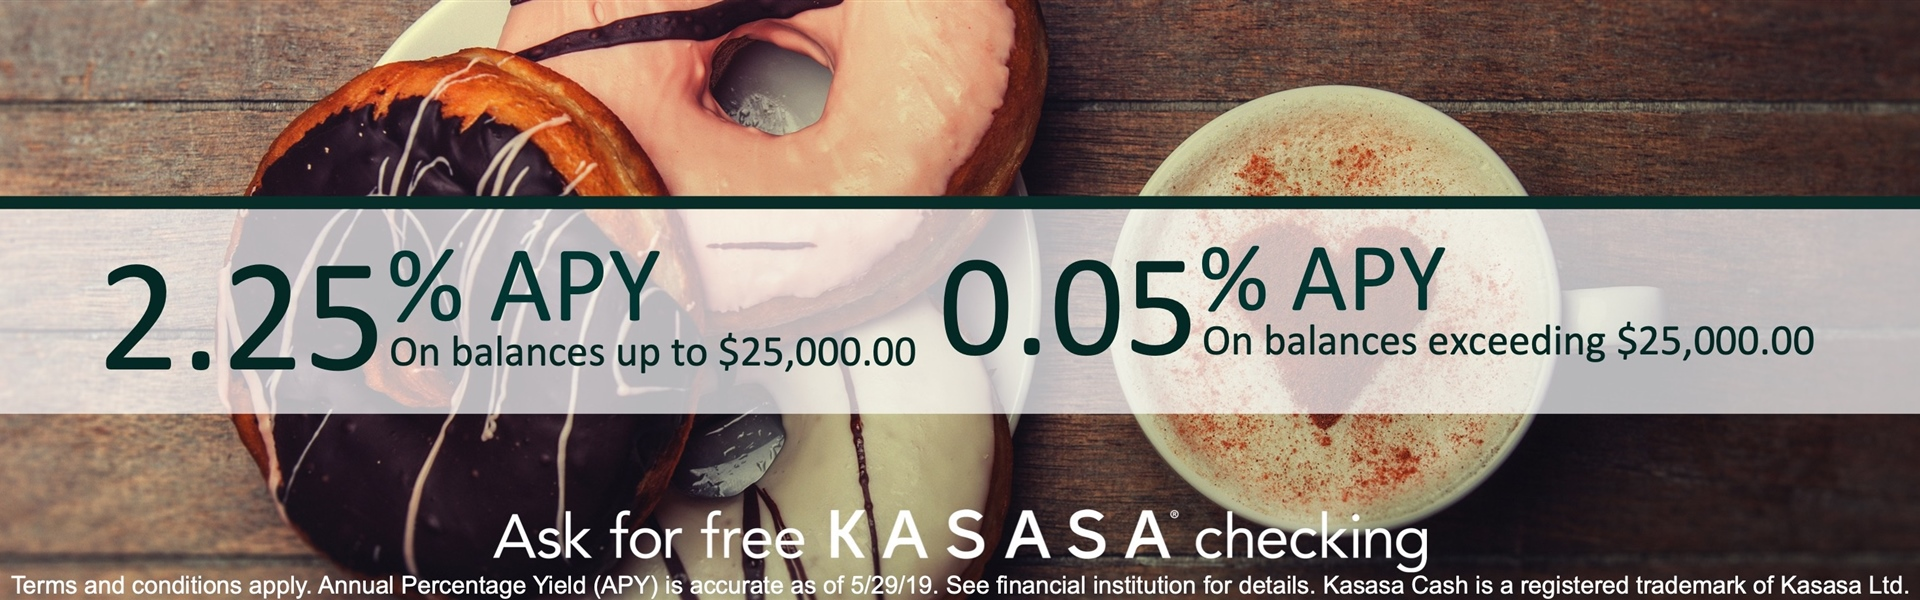 2.25 APY on balances up to 25,000.00 0.05 APY on balances exceeding 25,000.00 Ask for free Kasasa checking Terms and conditions apply APY is accurate as of 5/29/19 See financial institution for details